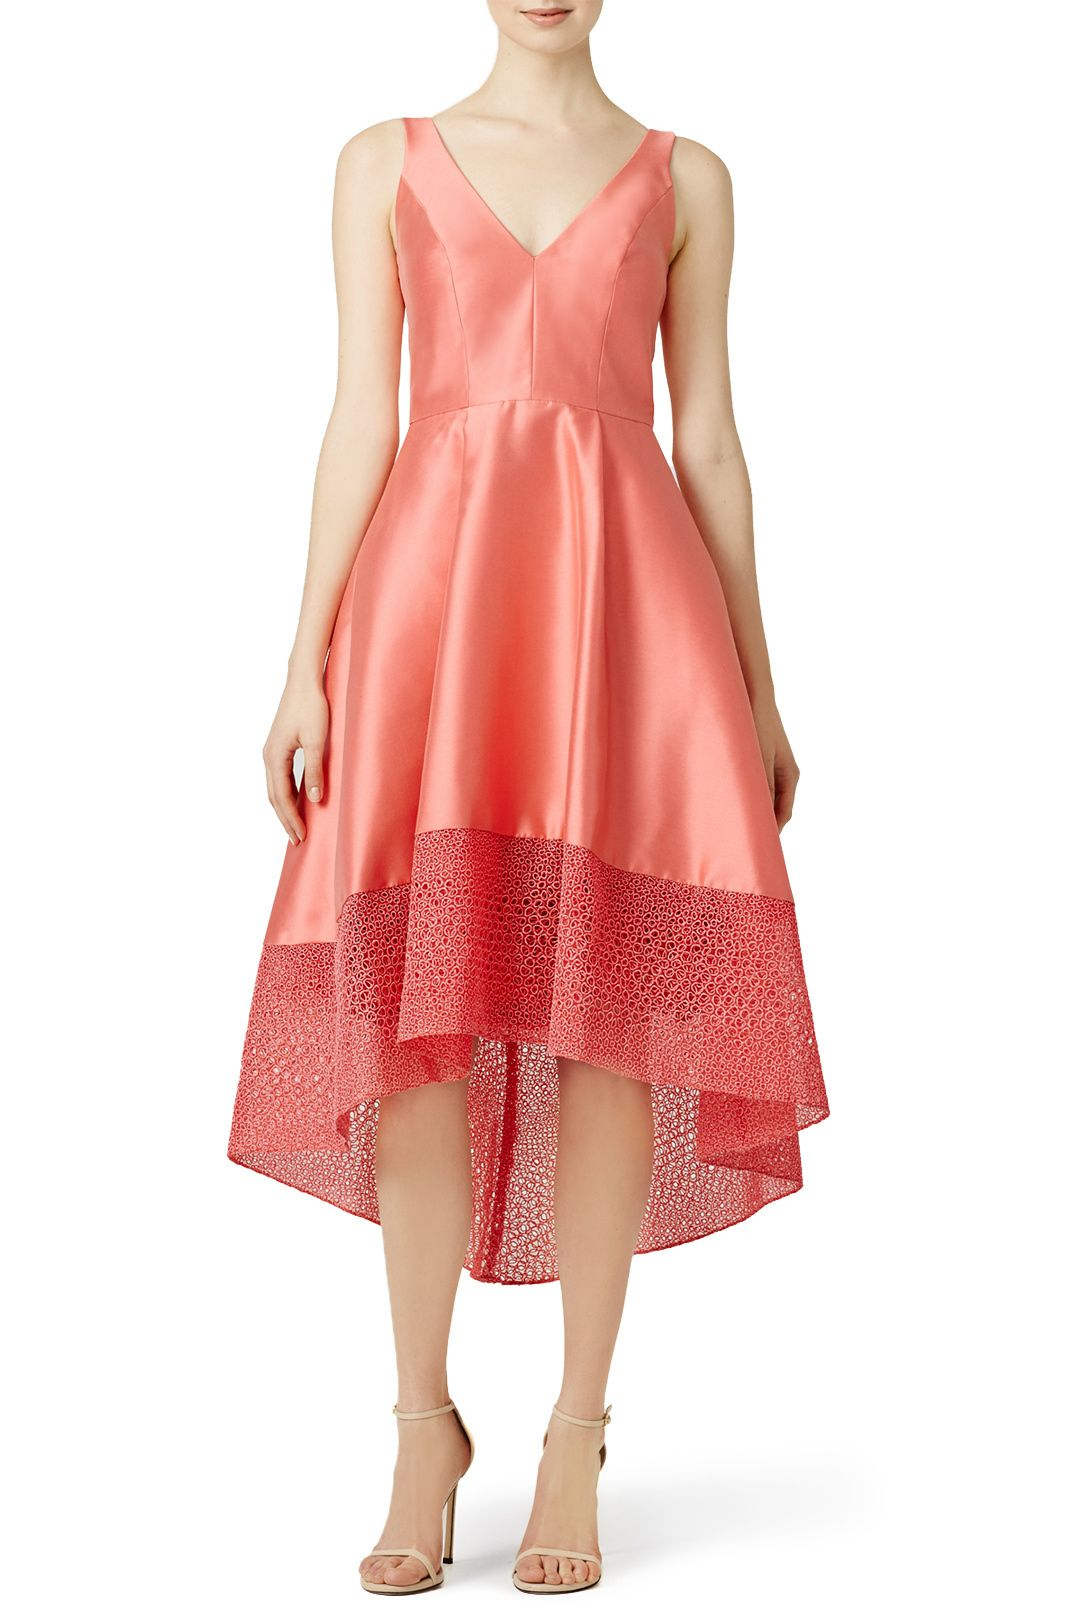 Coral Dresses for Weddings - Dress for Country Wedding Guest Check ...